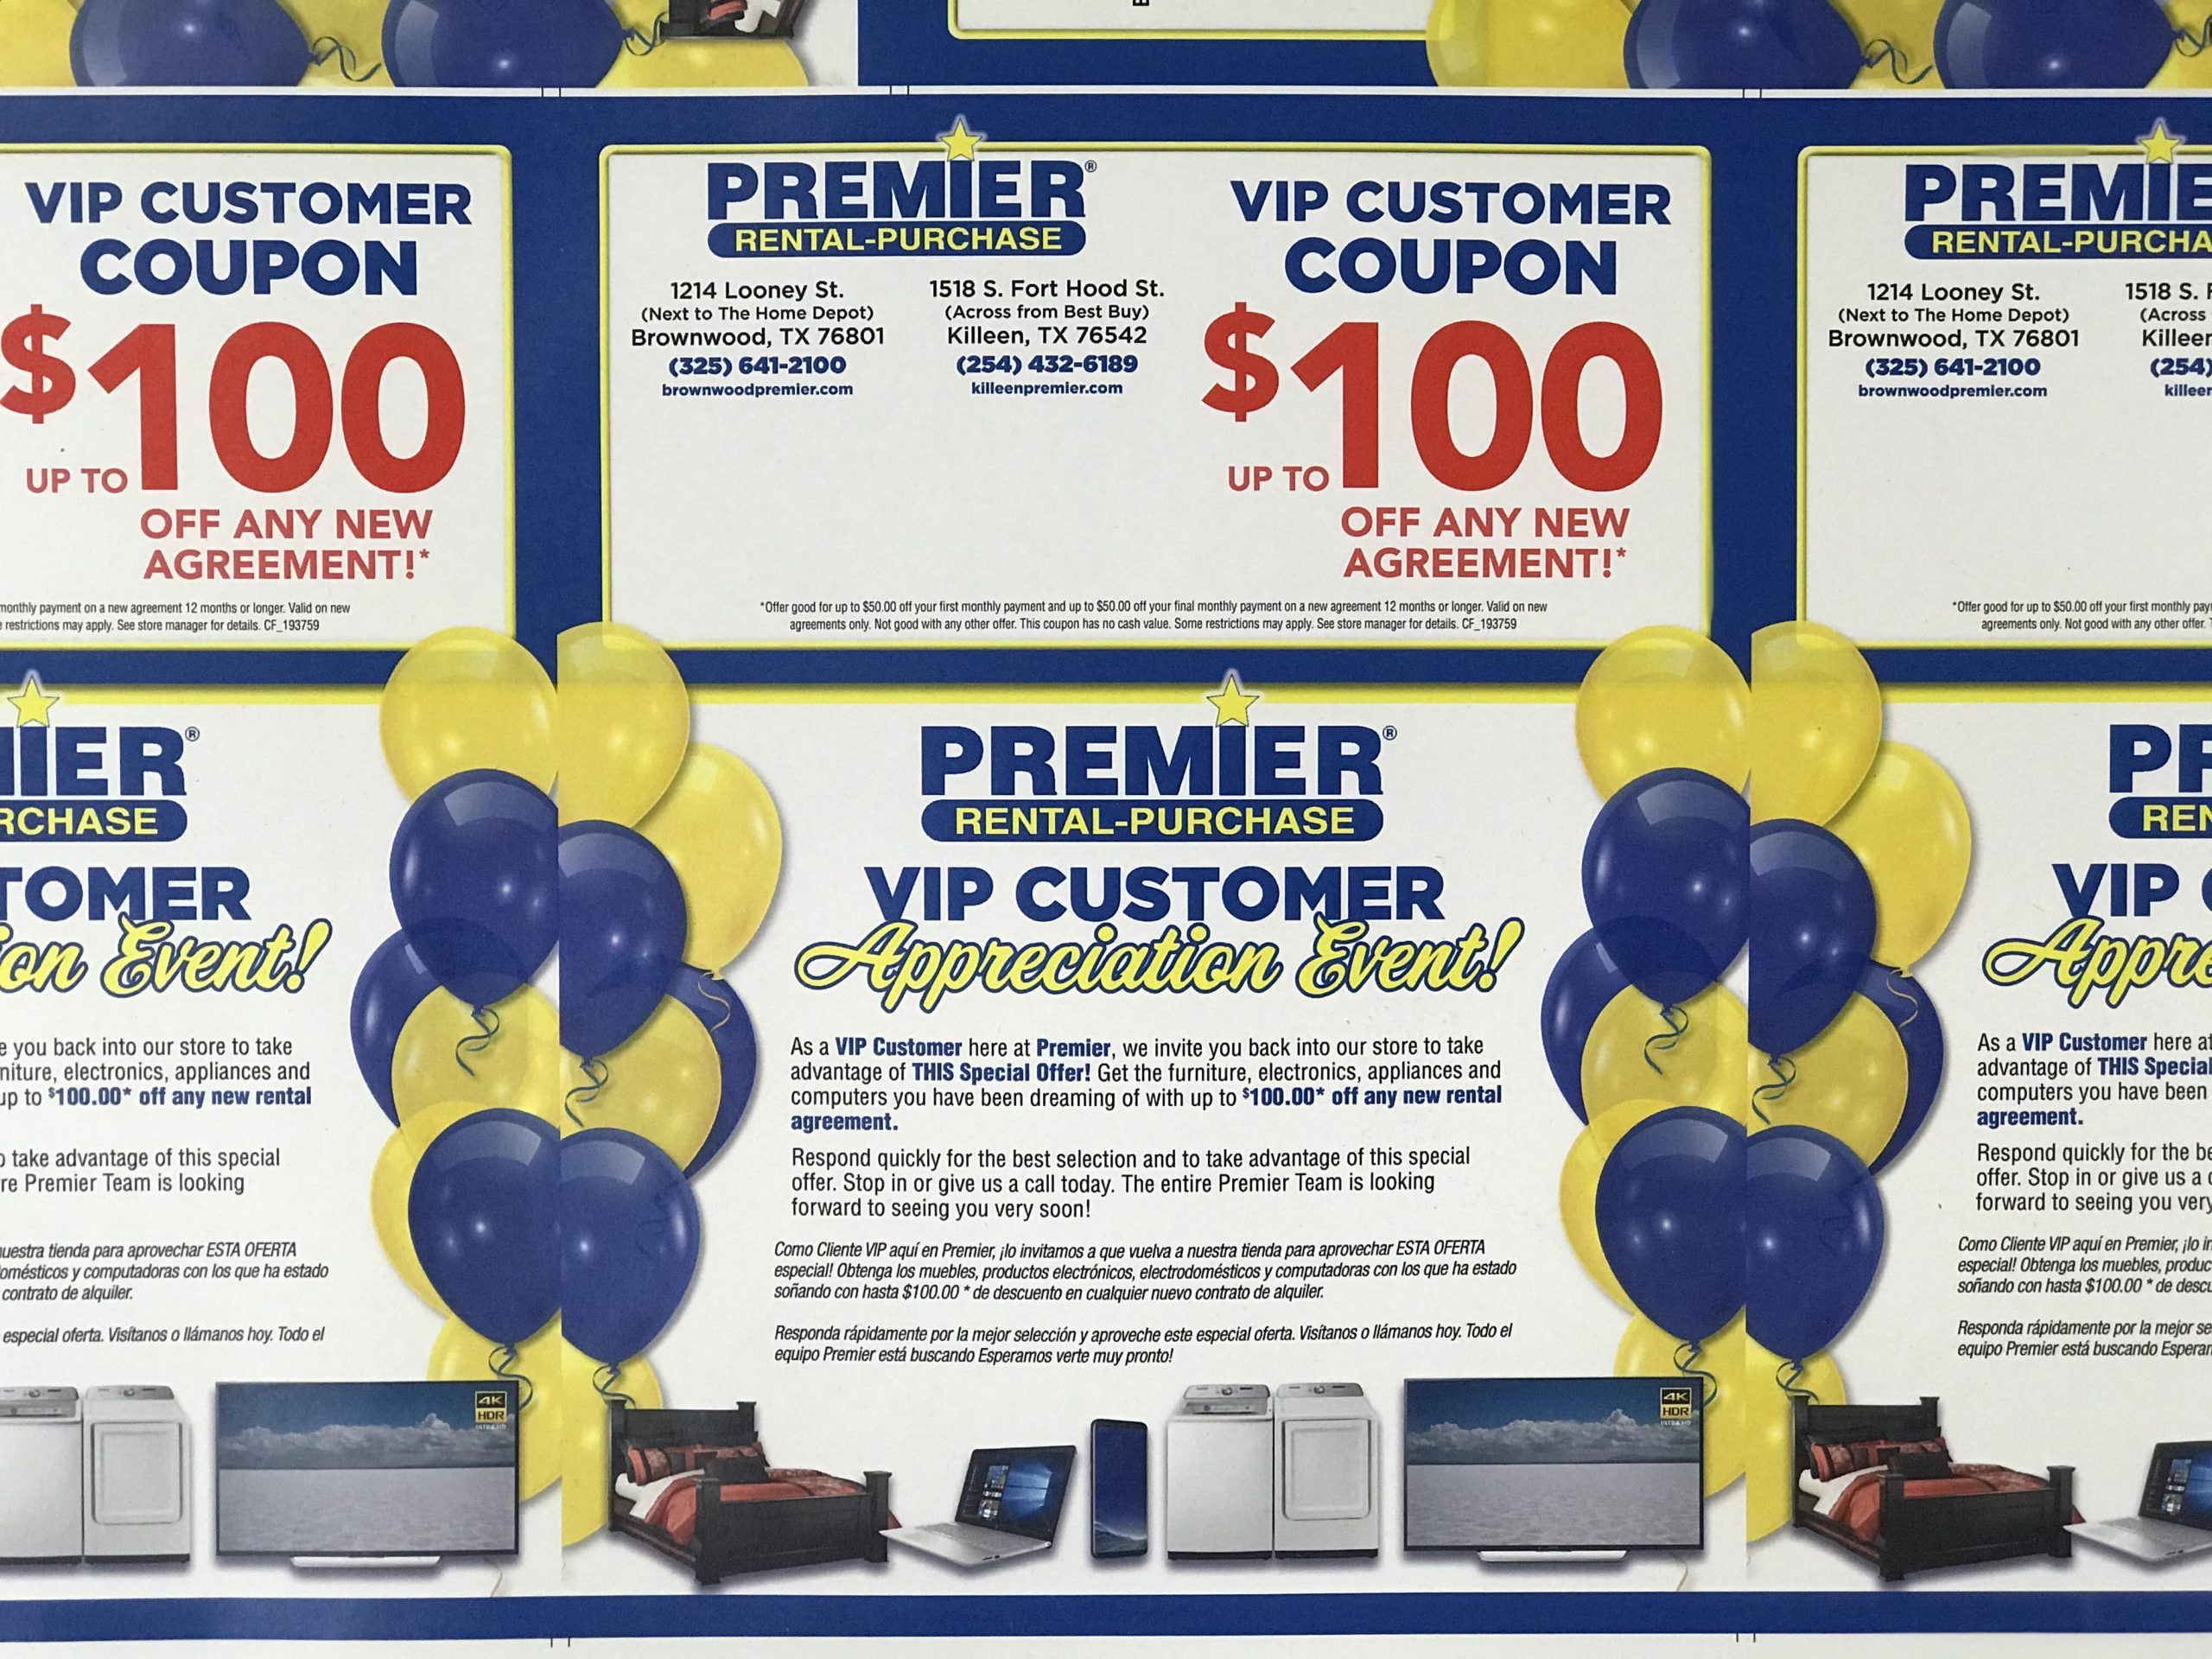 Premier Rental-Purchase personalized VIP customer coupon